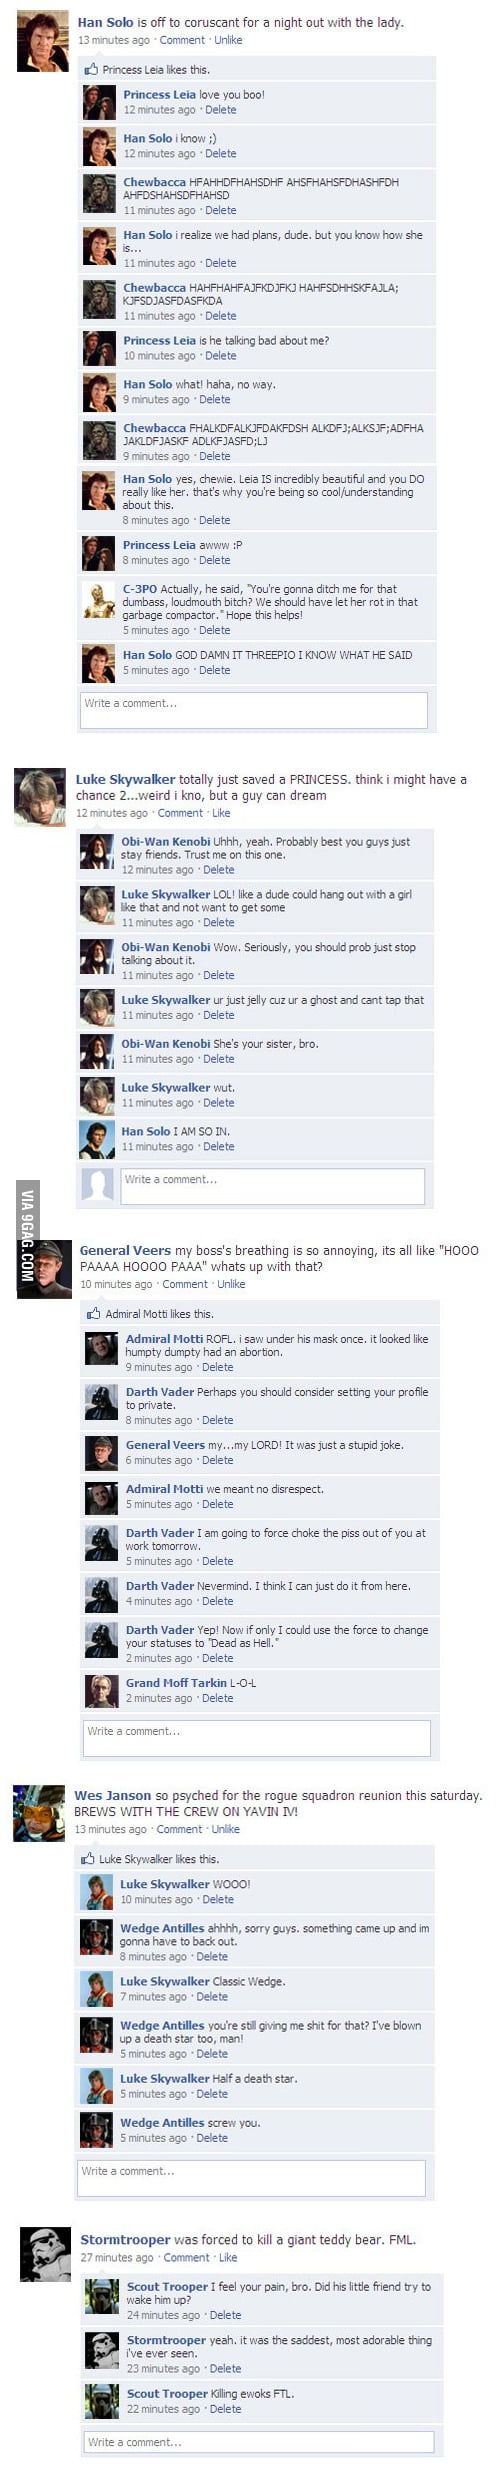 5 Star Wars Status Updates